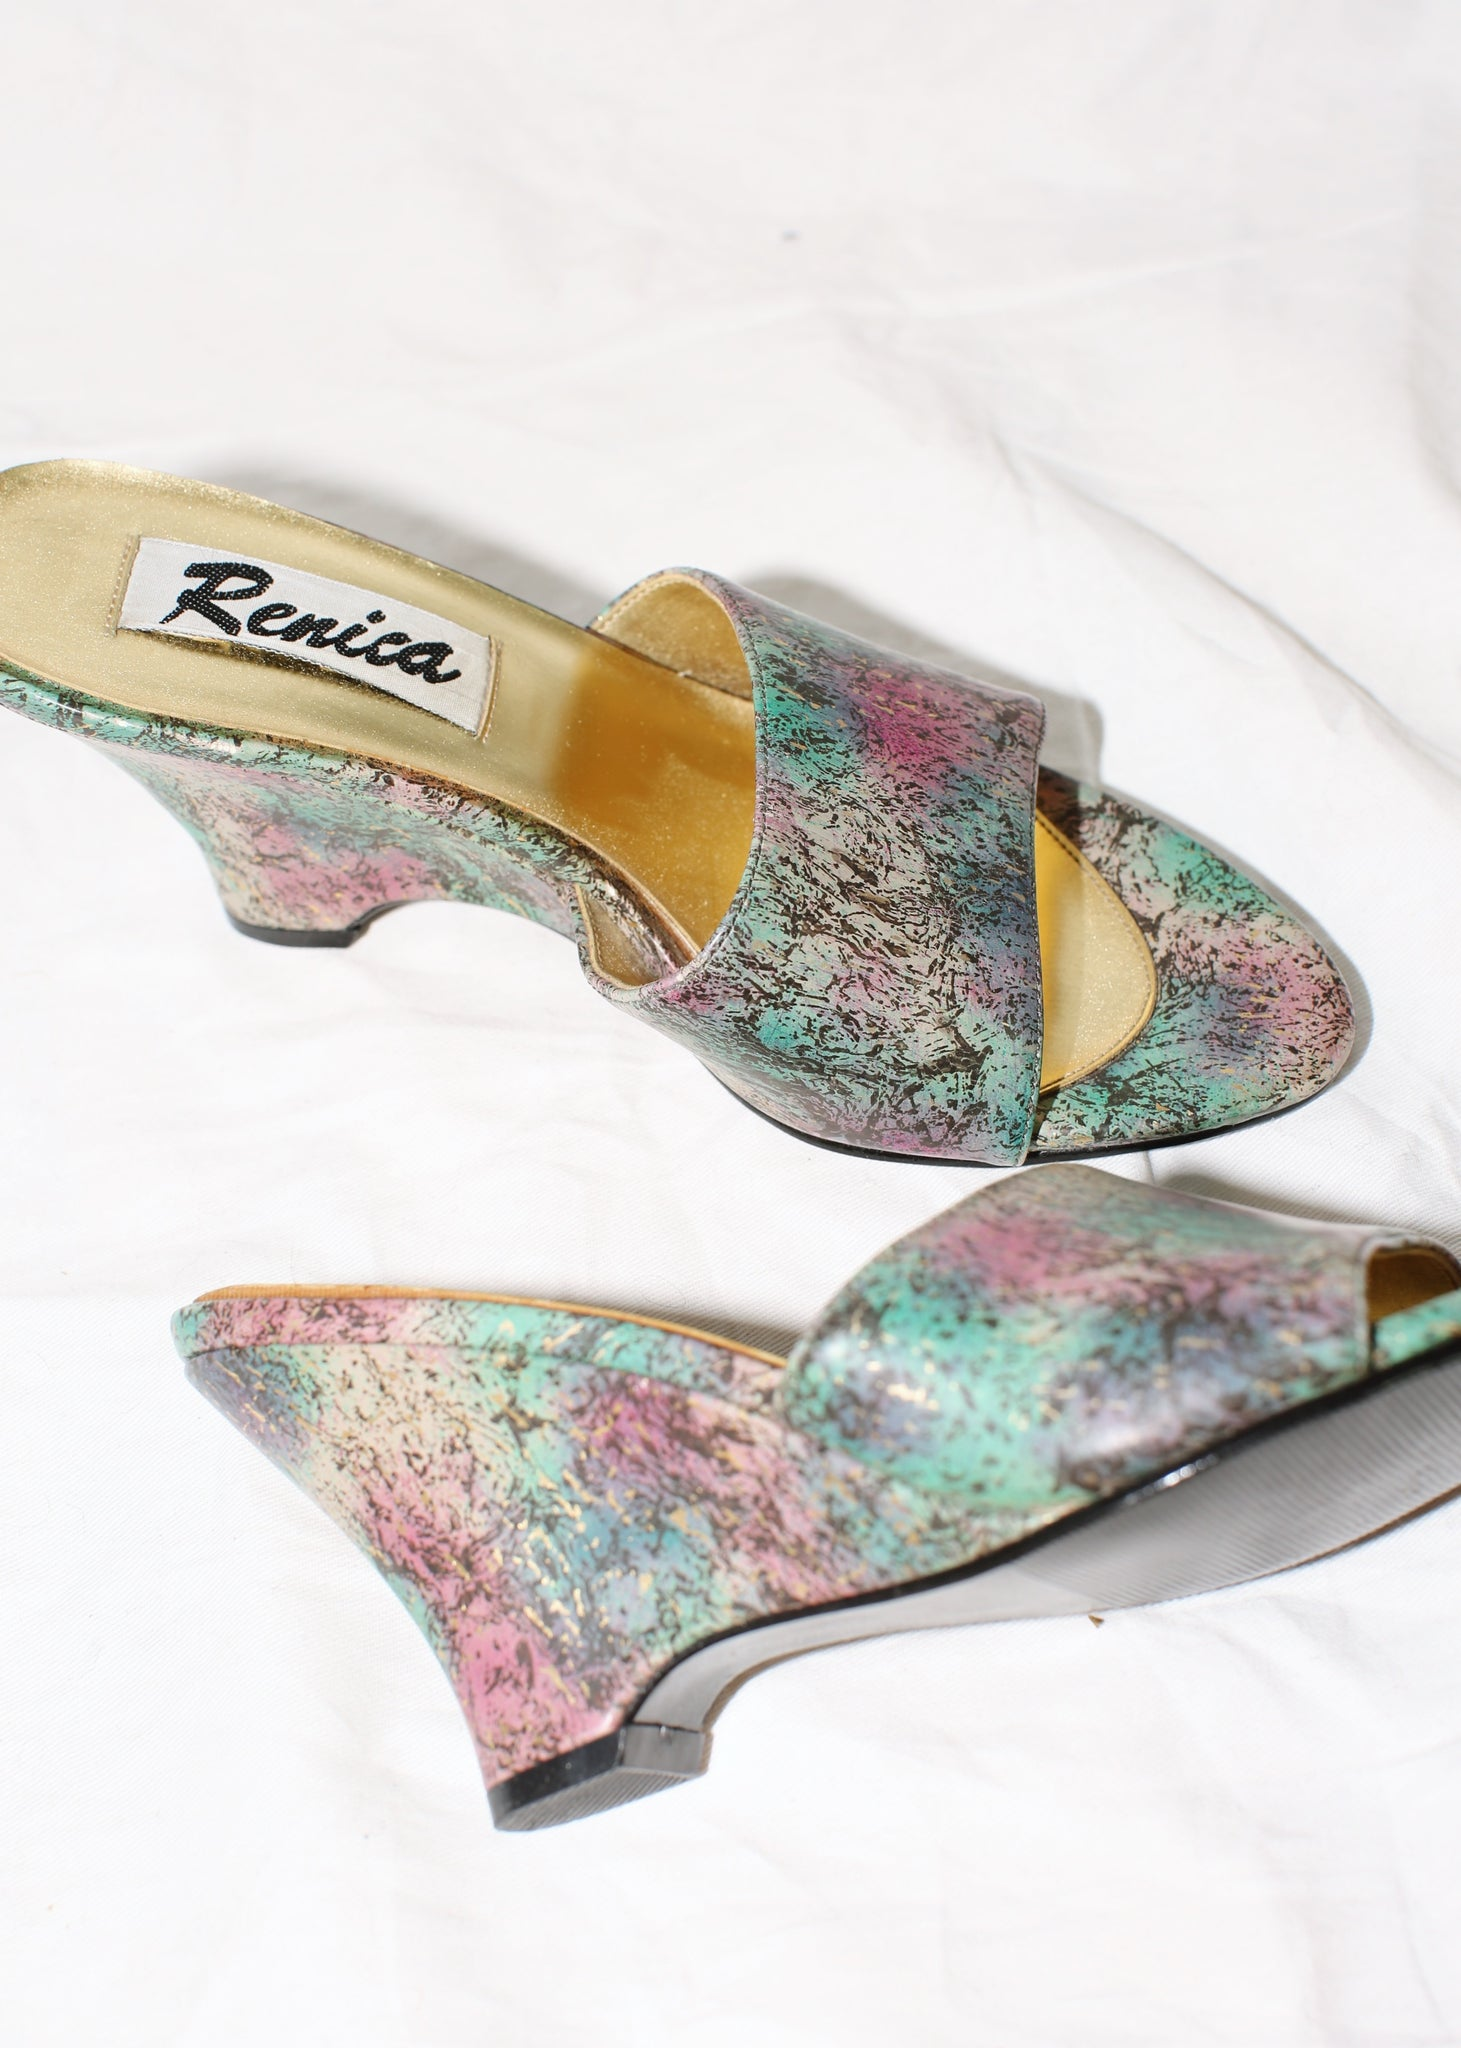 VINTAGE MULTI COLOR PRINTED WEDGE SANDALS (6)